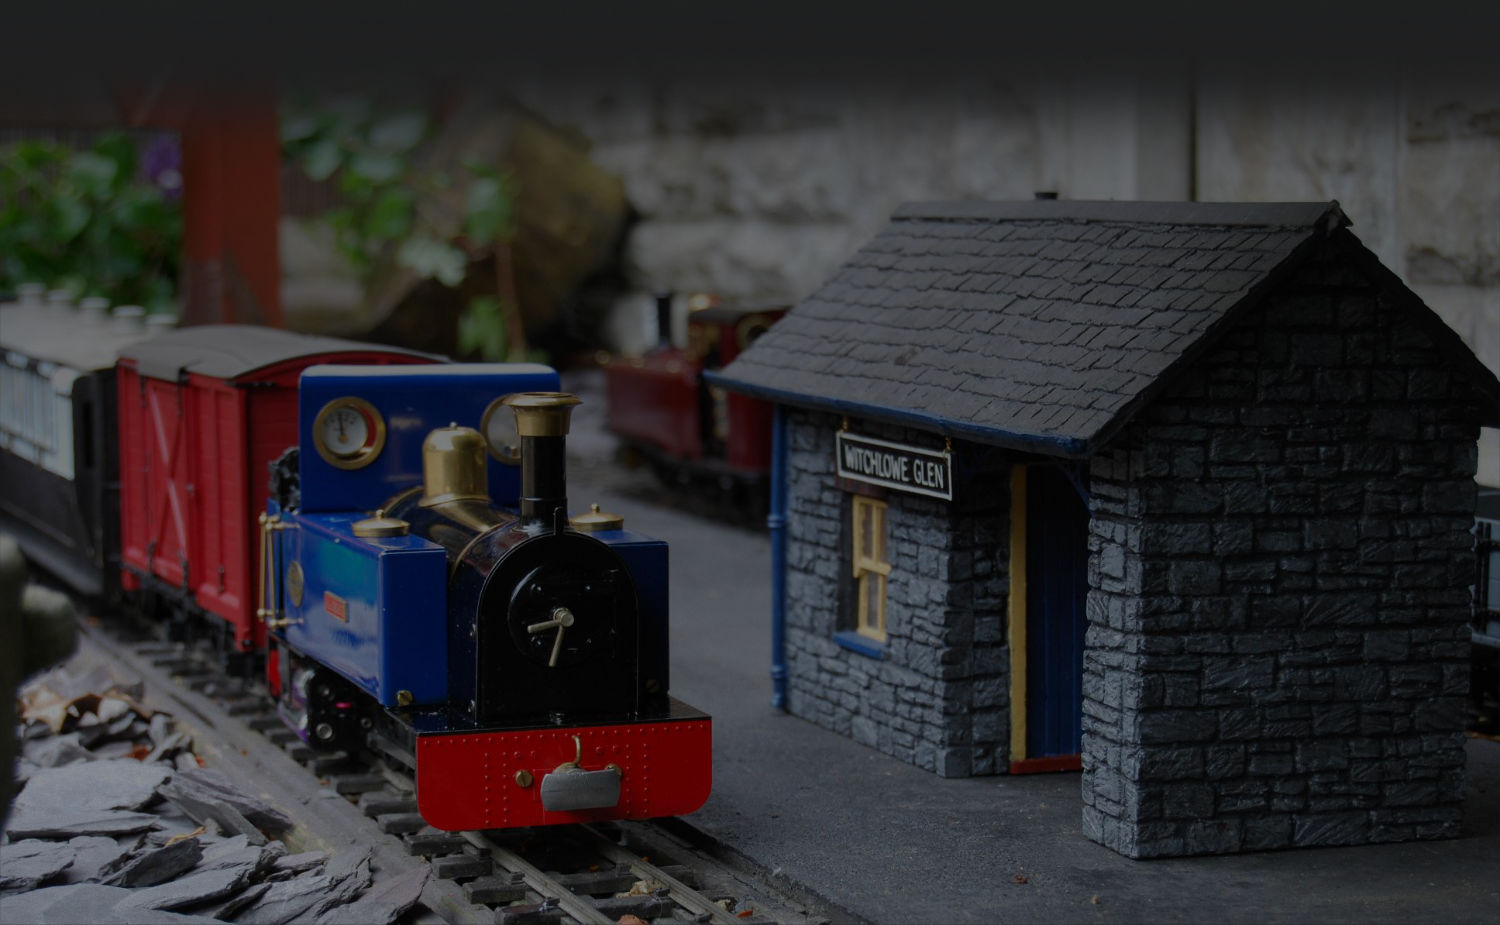 SHOP, Garden Model Railway Building Kits, Pendle Valley Workshop, UK